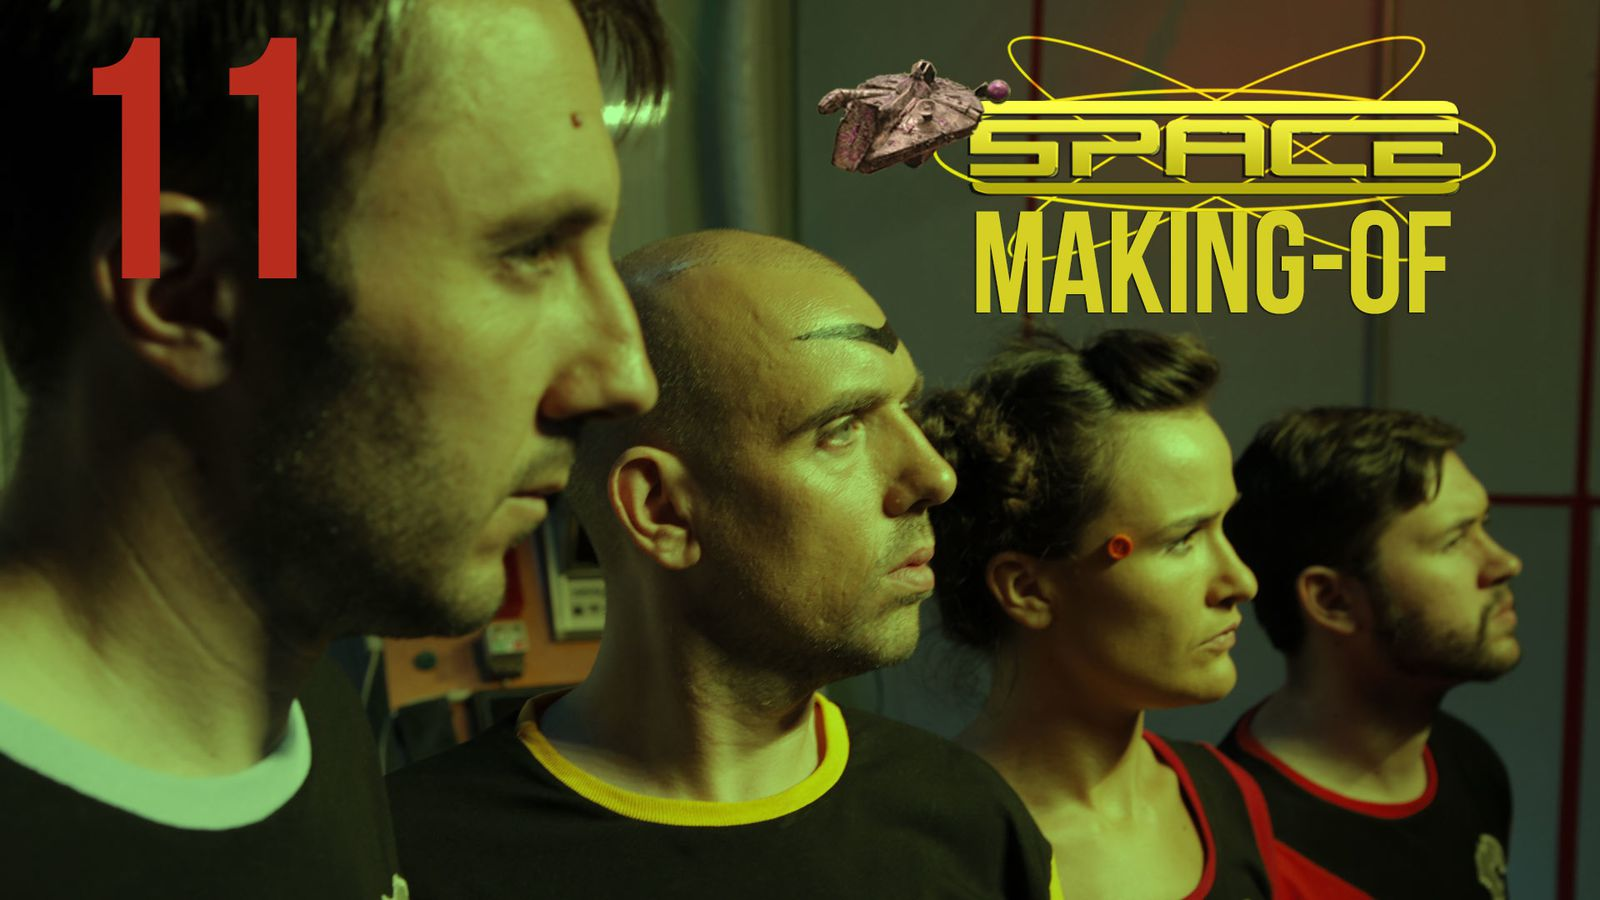 SPACE - MAKING OF 11 - Prions les doigts